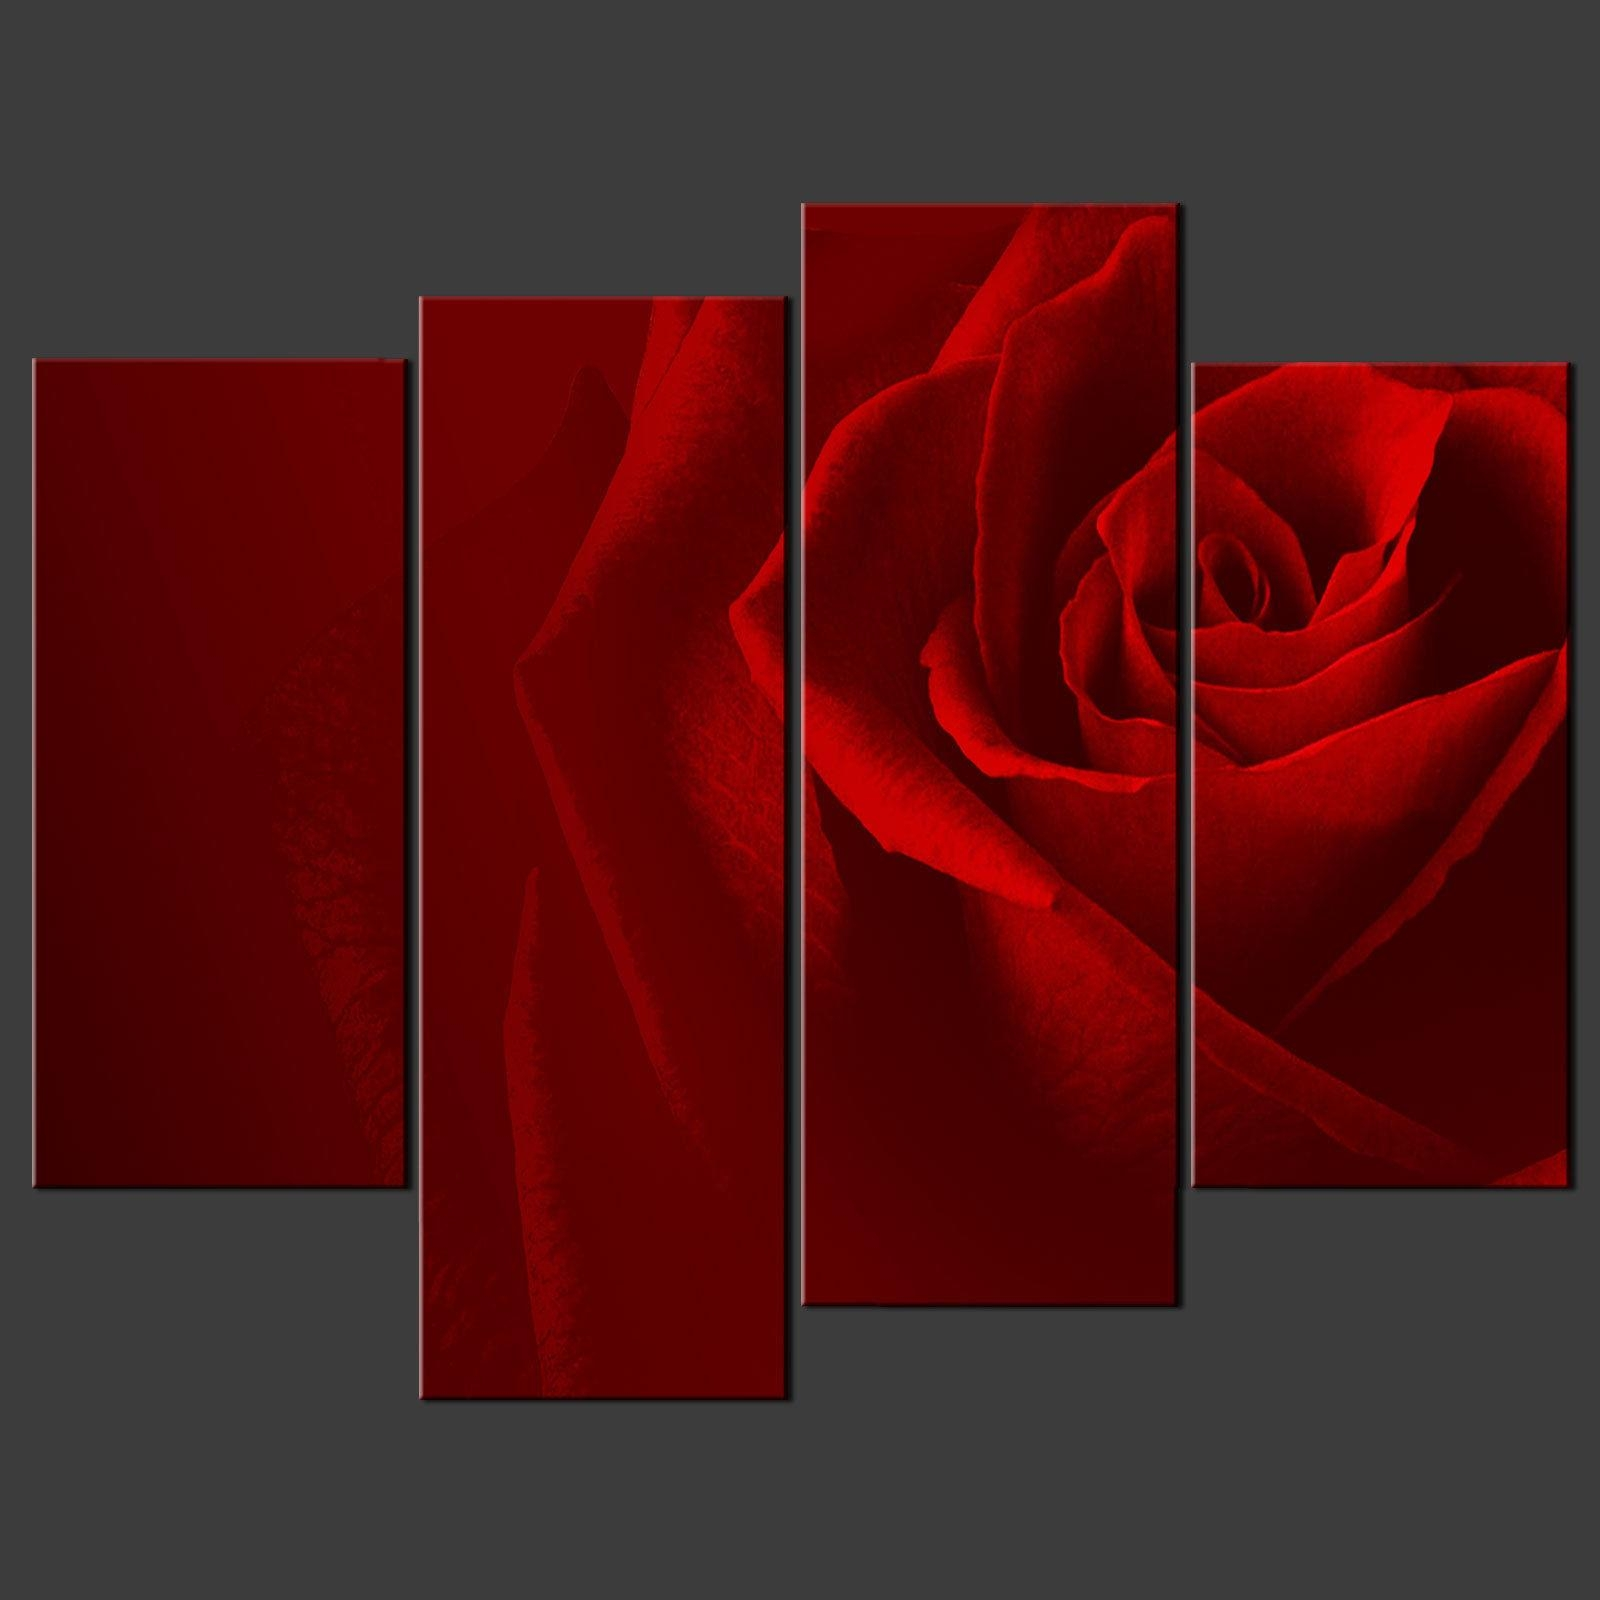 Red Rose Canvas Wall Art Pictures Prints Decor Larger Sizes Within Red Rose Wall Art (View 4 of 20)